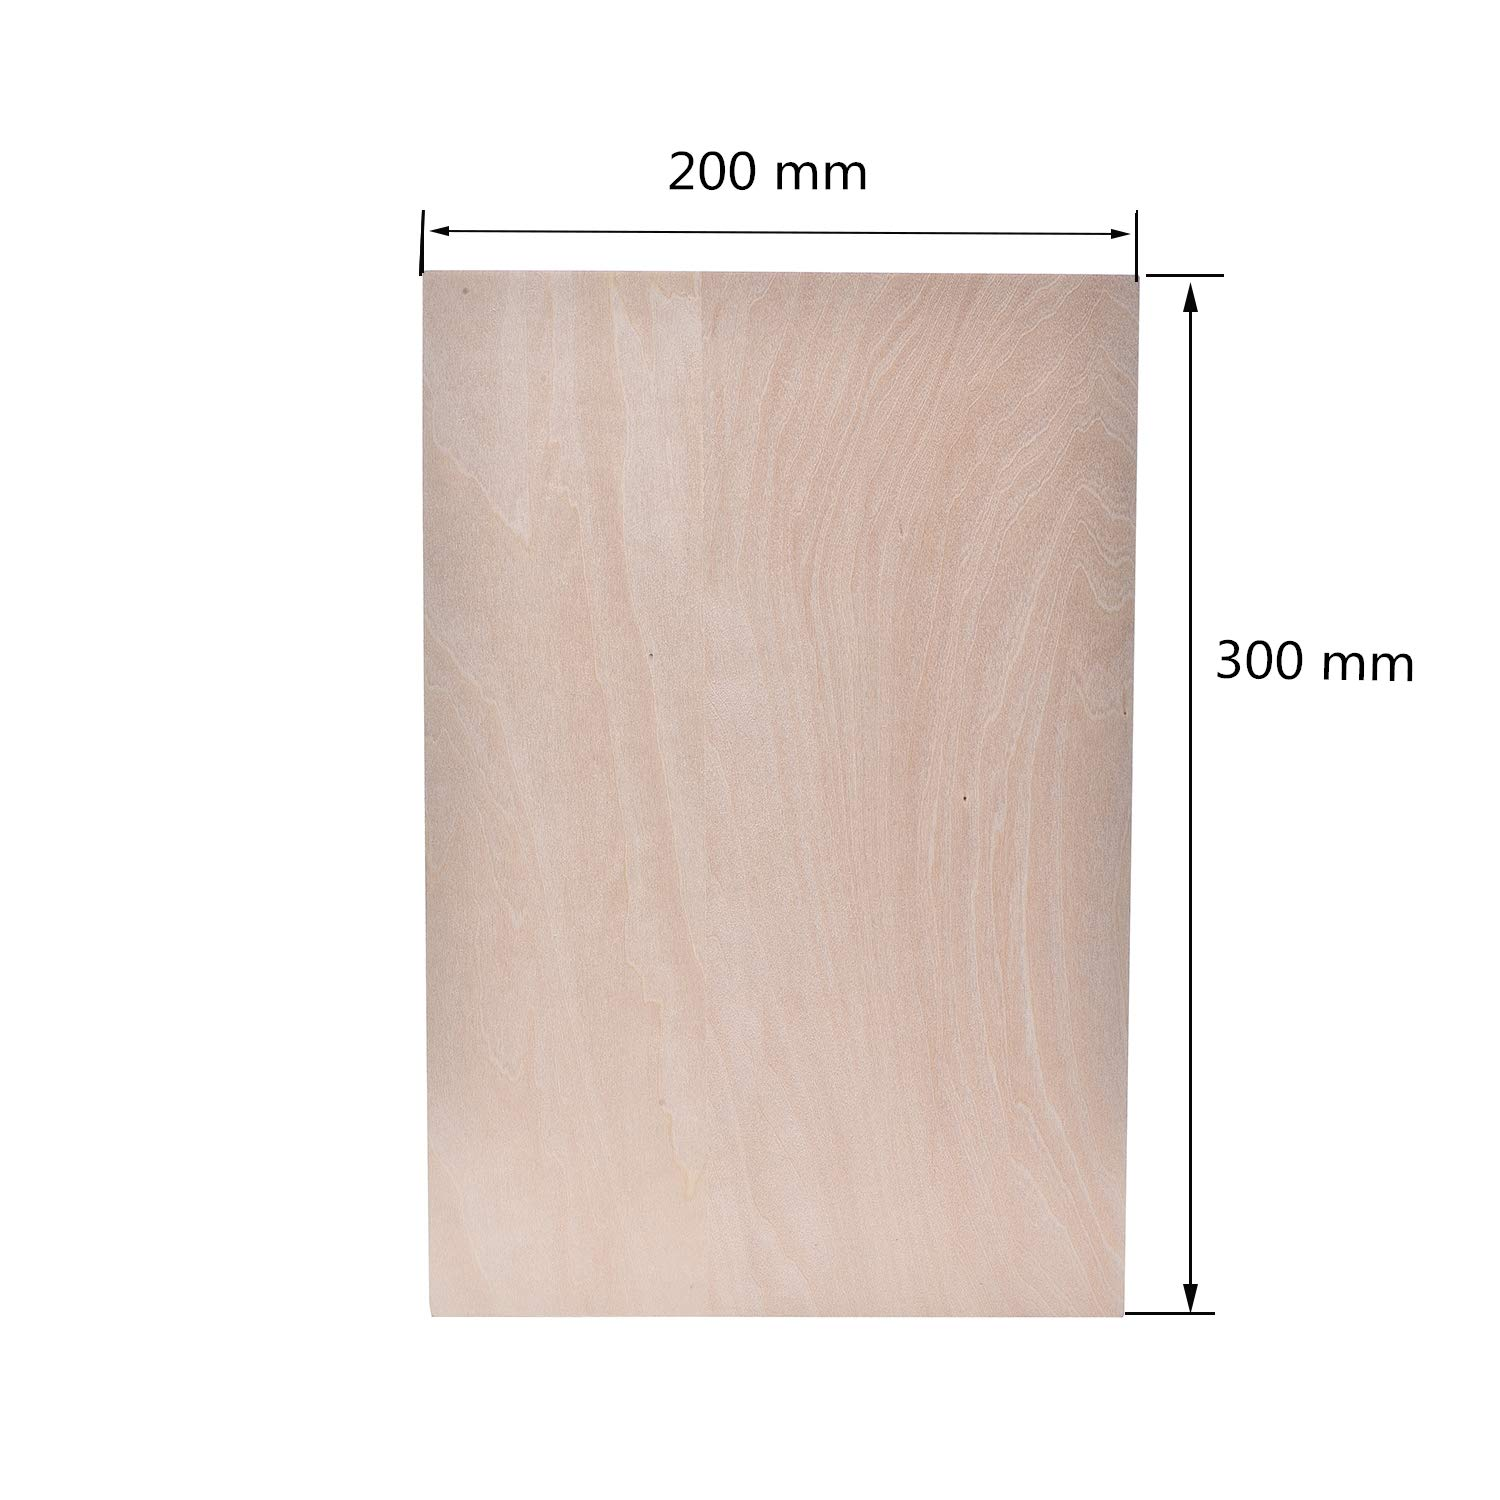 1.5mm/×300 mm /×200 mm Thin Basswood Sheet for Cricut Maker,Plywood Wood Piece for Crafts